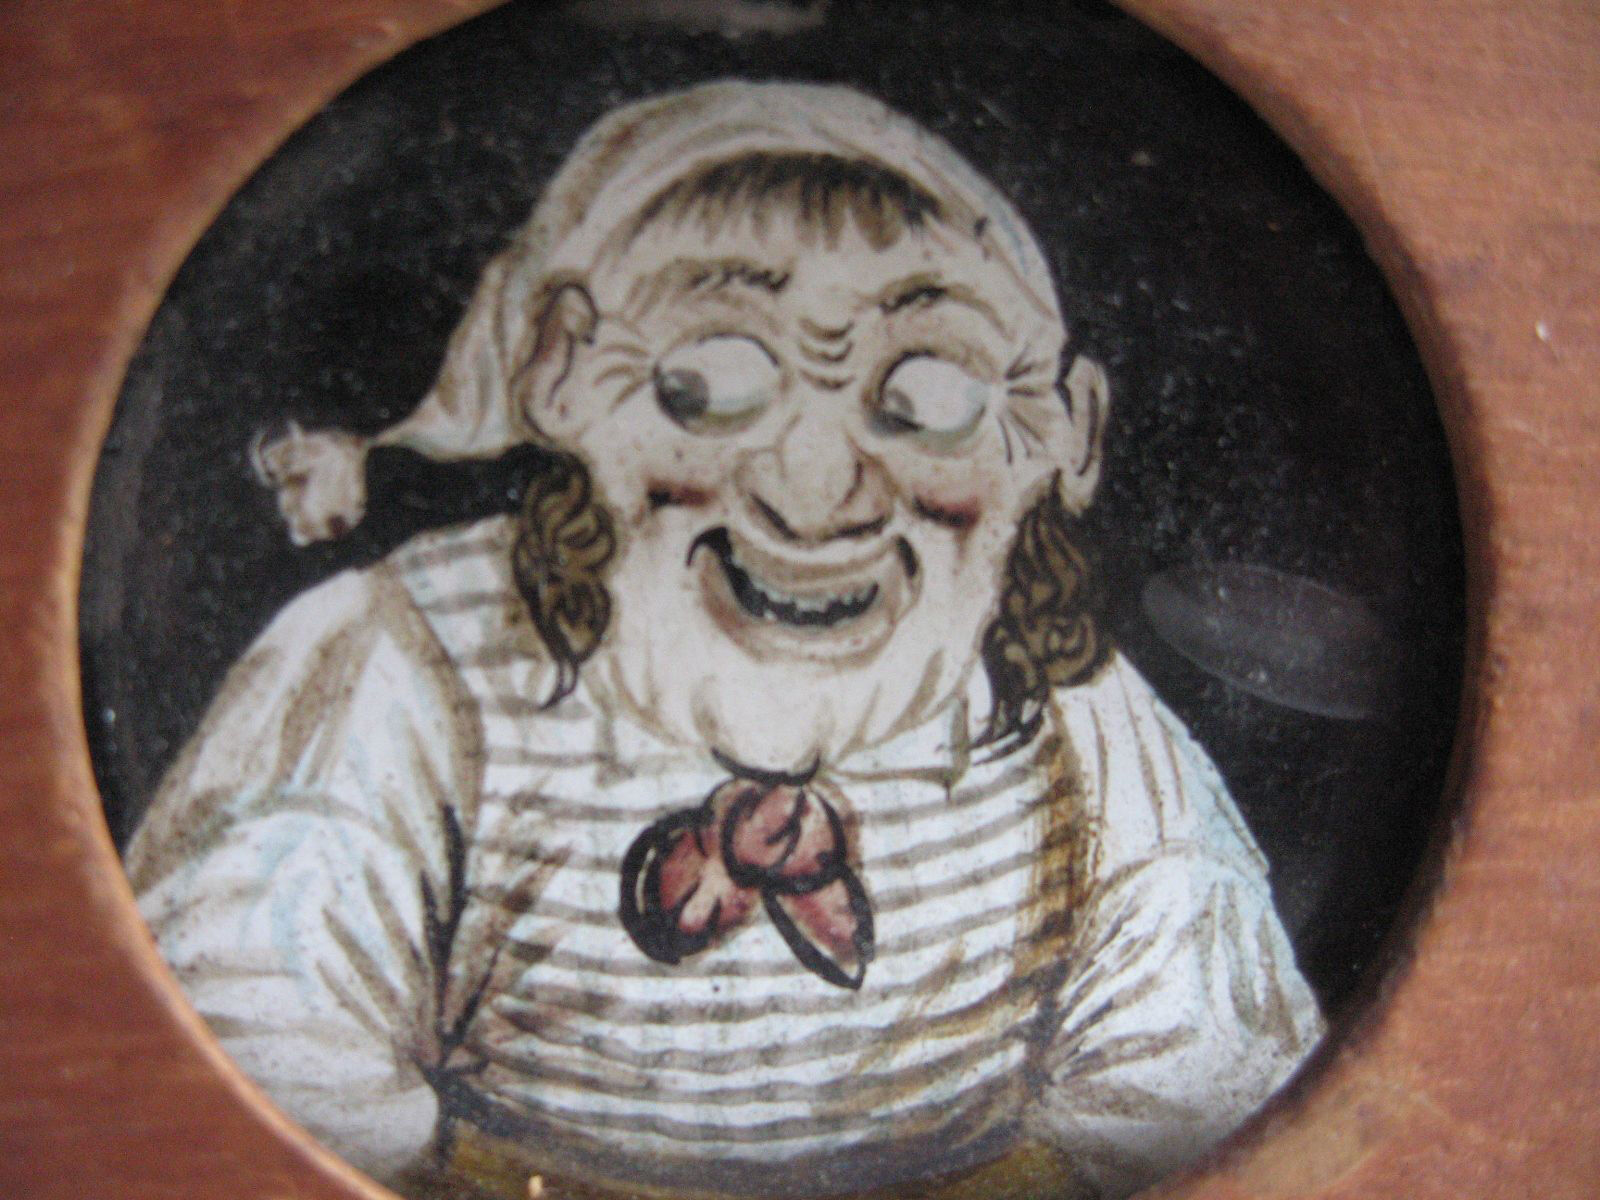 EARLY TOY PAINTED SAILORS FACE ON GLASS WITH MOVING EYES